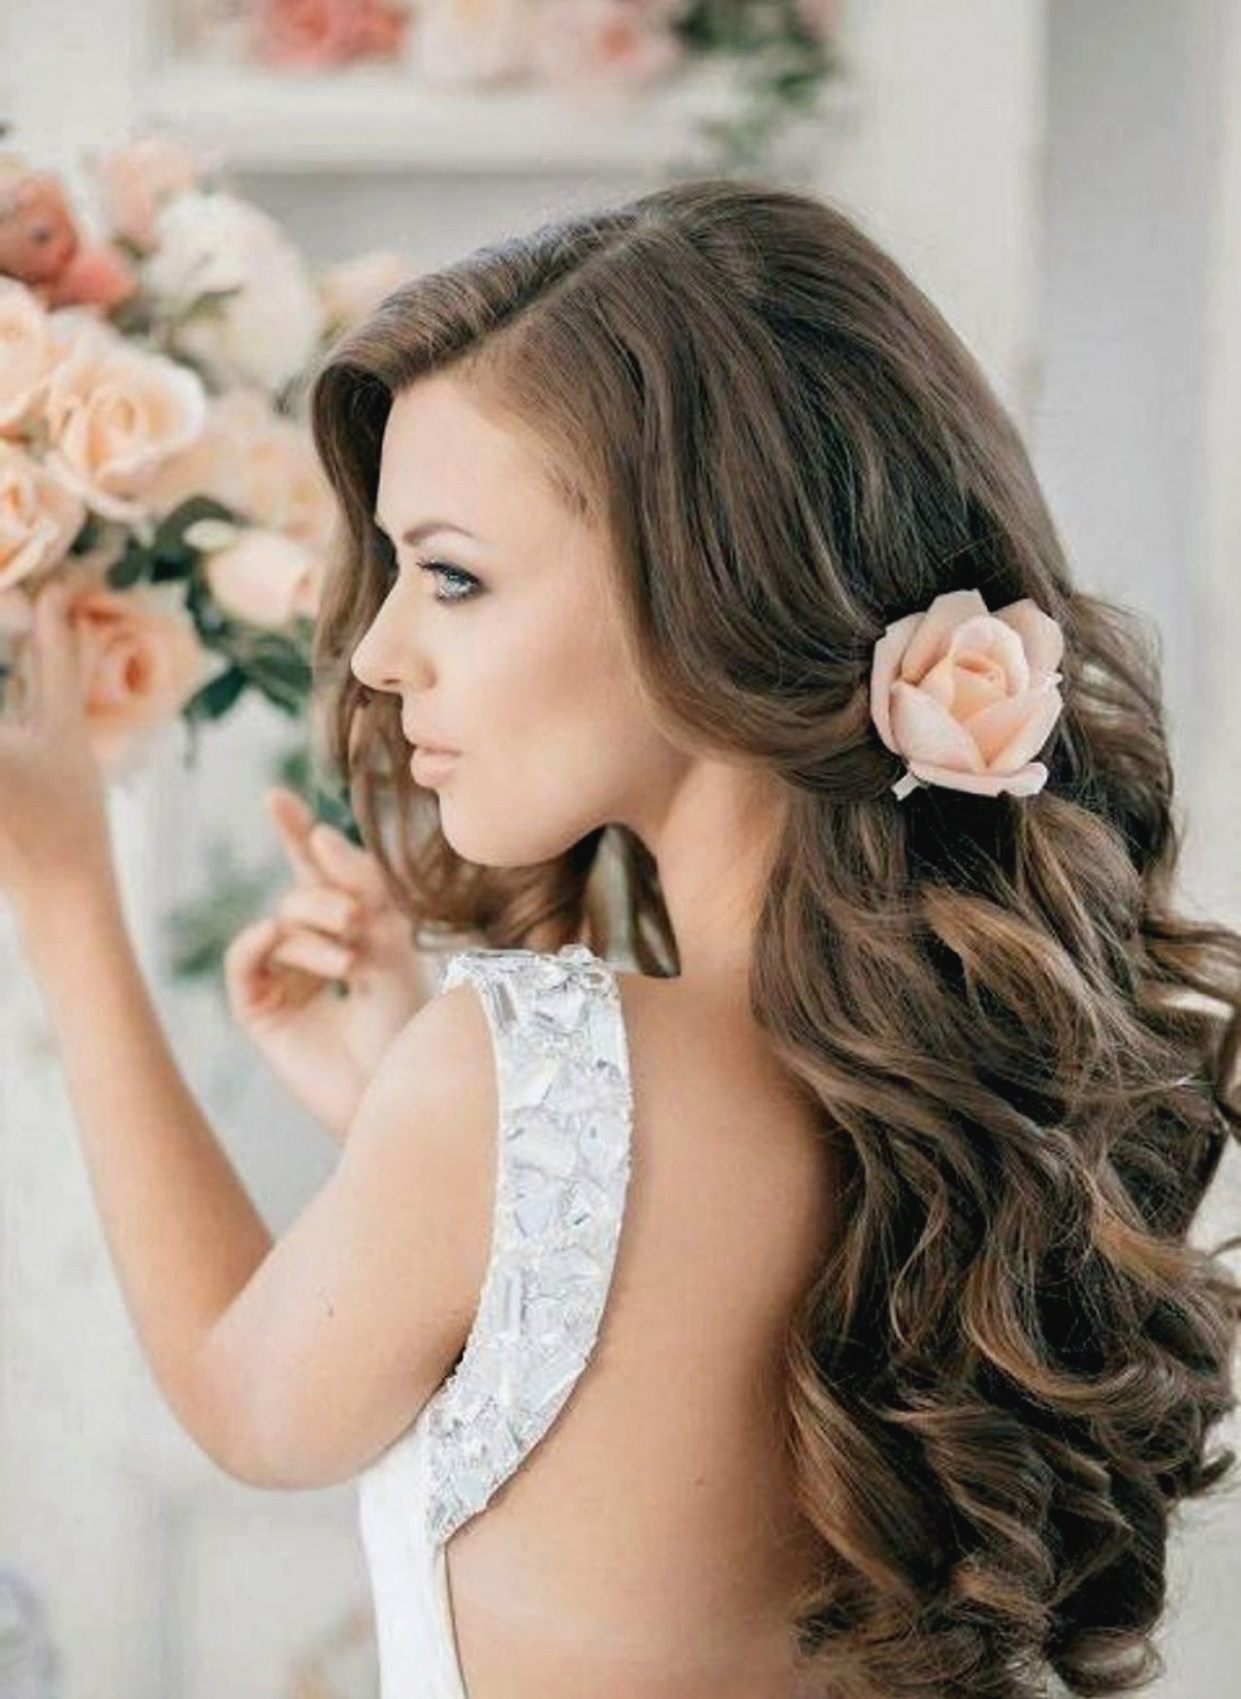 Favorite Wedding Guest Hairstyles For Long Curly Hair Intended For Long Curly Hairstyles For Wedding Guest – Hairstyle Pop – Curly Hair (View 9 of 15)